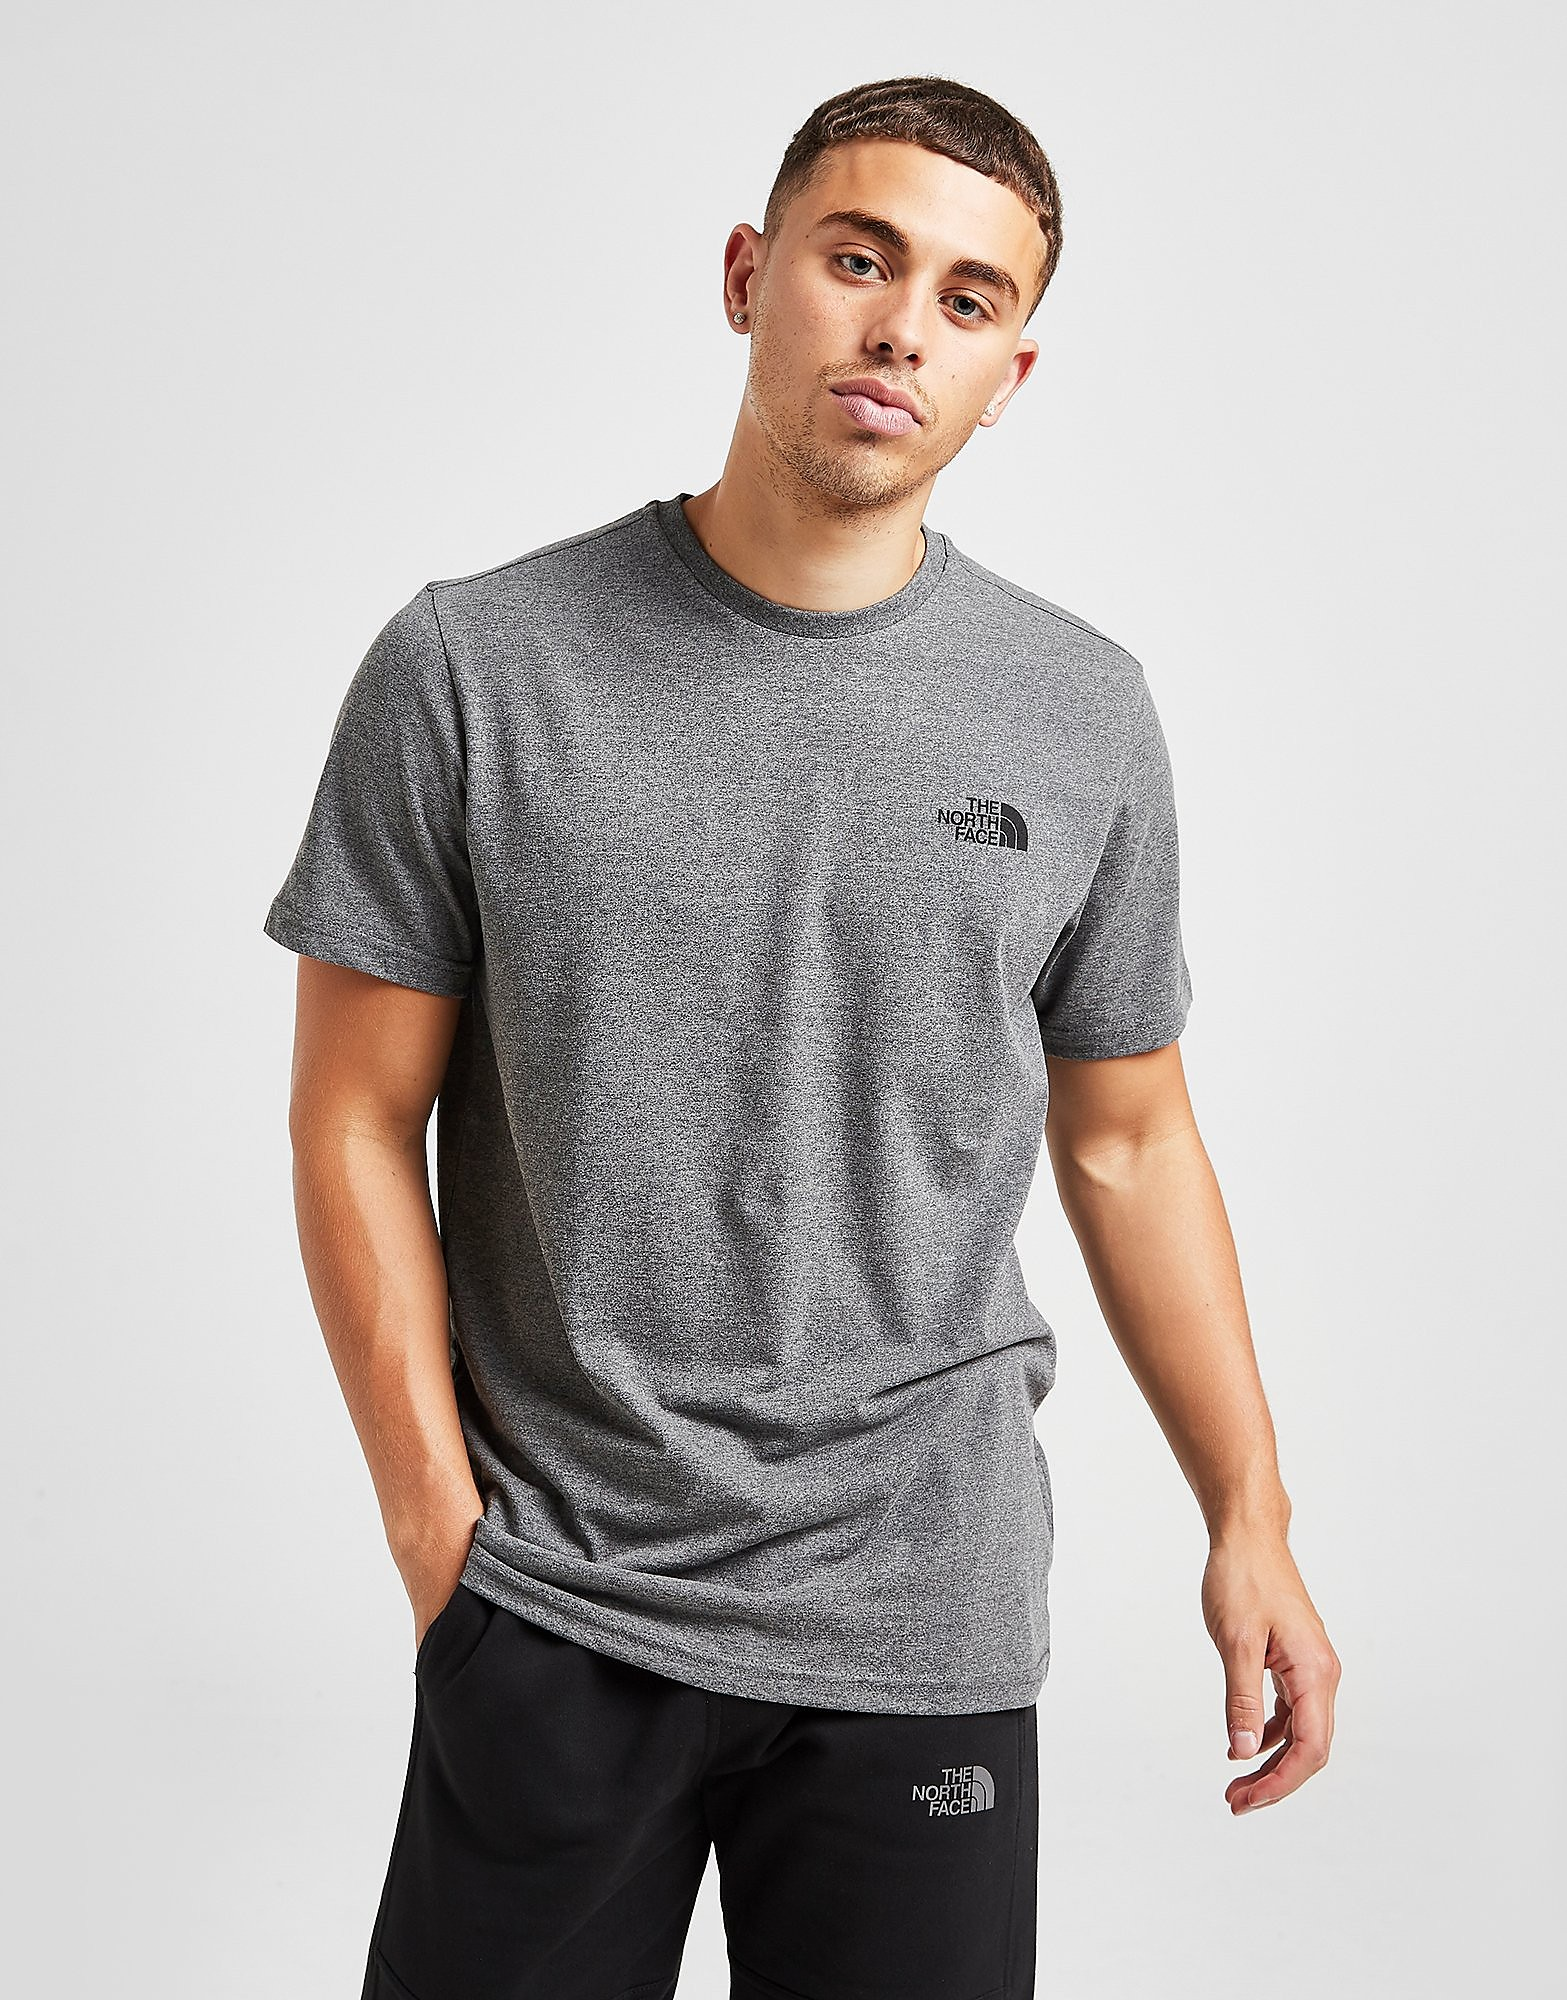 The North Face Simple Dome T-Shirt - Grijs - Heren